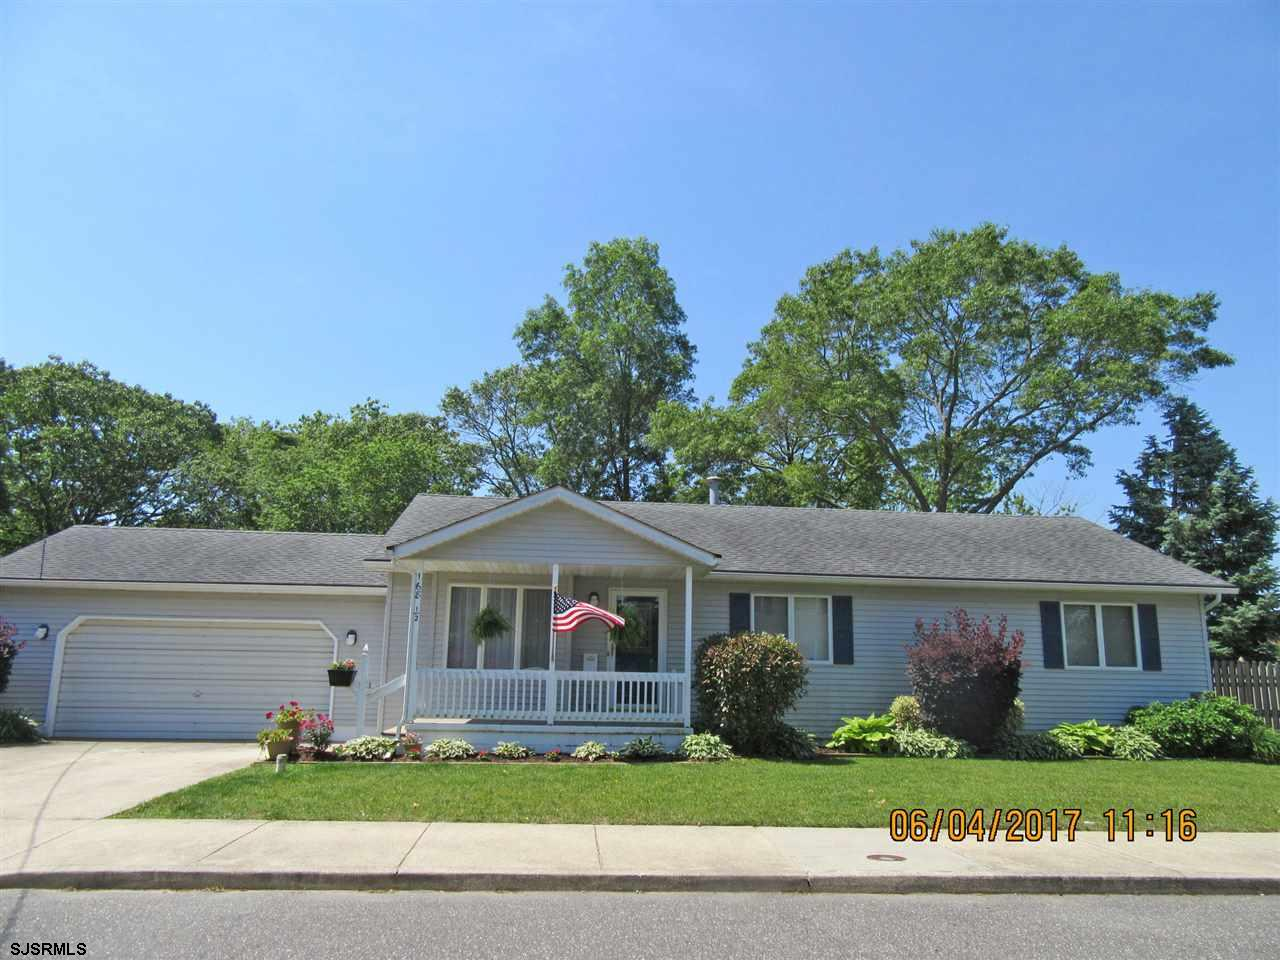 168 1/2 W Pierson Ave, Somers Point, NJ 08244